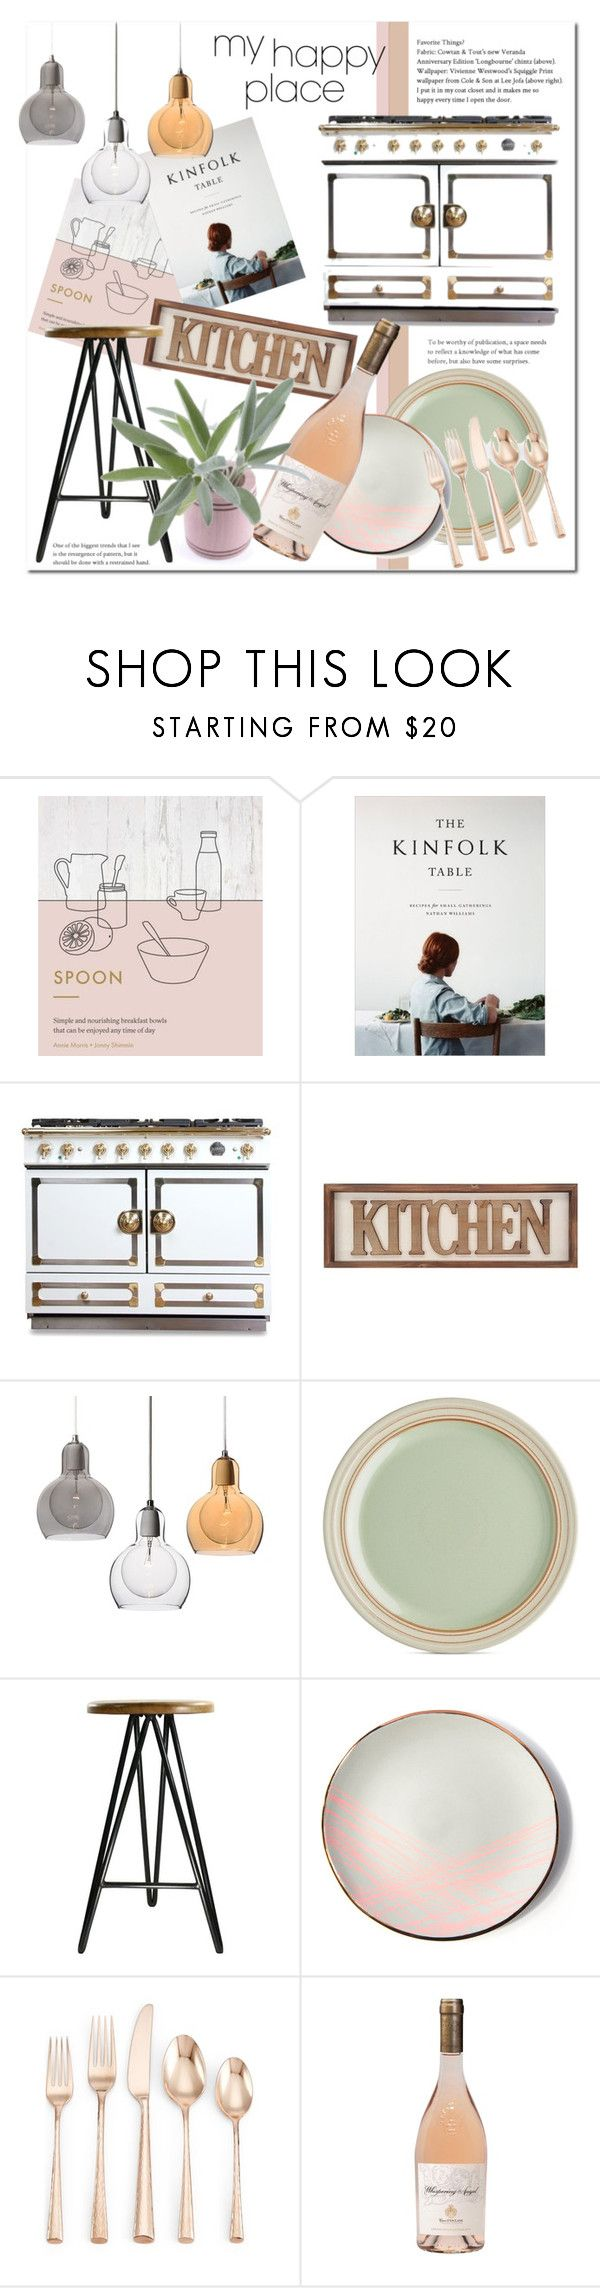 """My Happy Place: Kitchen"" by stylemaven2 ❤ liked on Polyvore featuring interior, interiors, interior design, home, home decor, interior decorating, Berylune, La Cornue, Denby and HomArt"